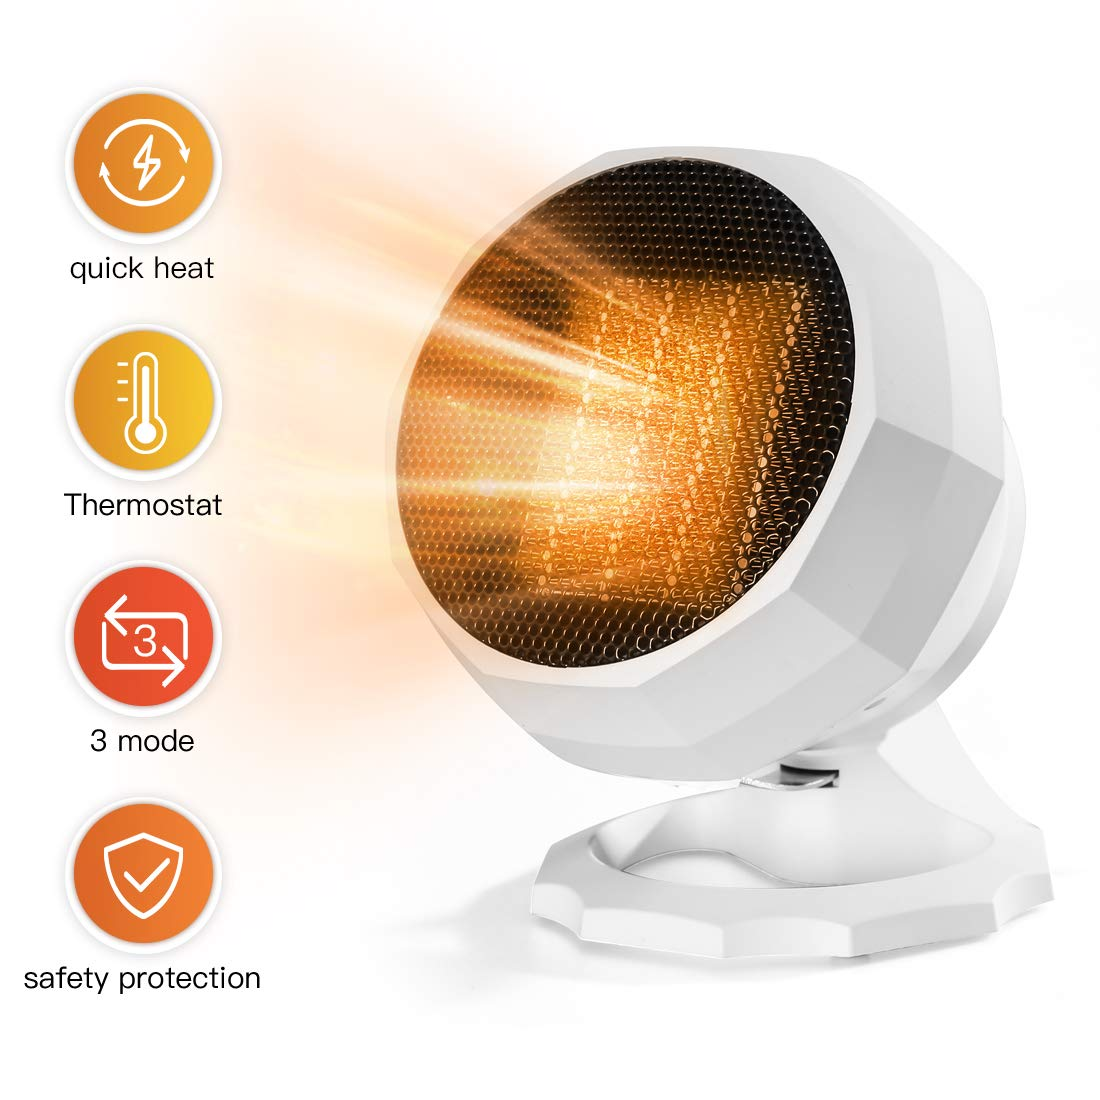 Space Heater,1800W Portable Ceramic Heater 3 Setting Mode Electric Heater Fan 90 Rotation Personal Heater With Thermostat Overheat Protection Air Conditioner For Home Bedroom Or Office